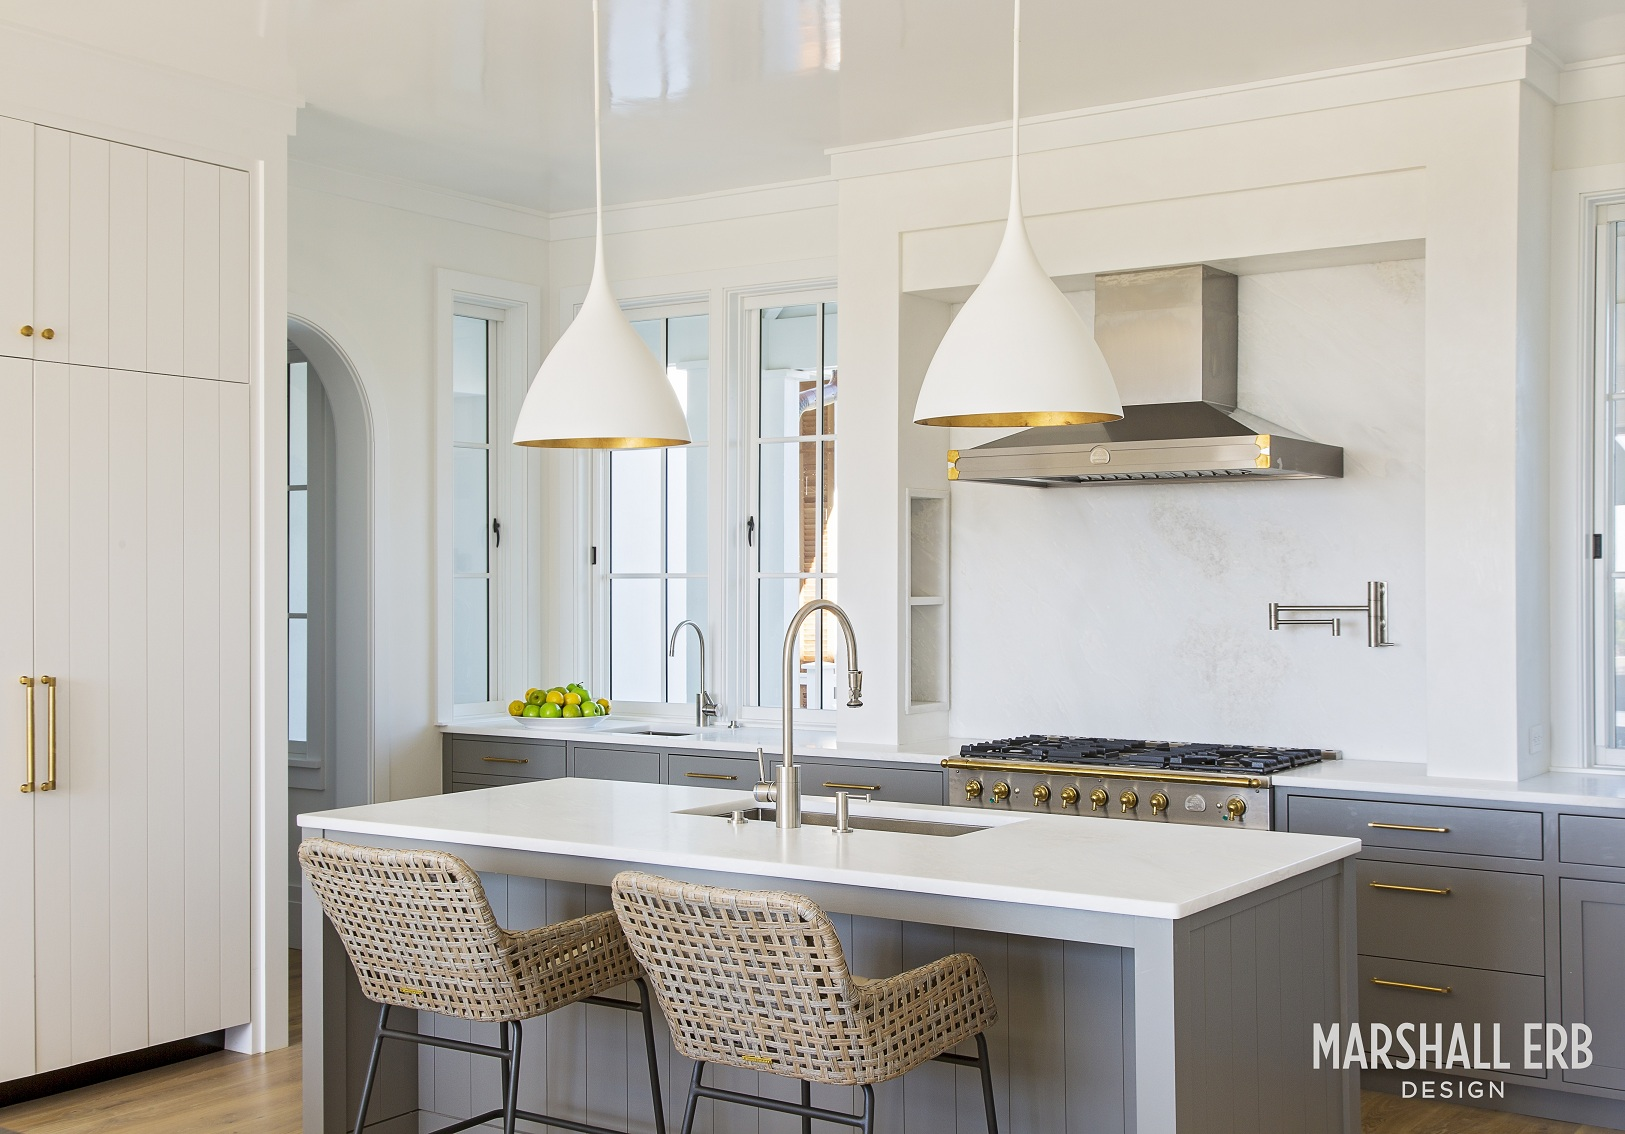 Marshall-Erb-Design-Beach-House-Kitchen-Island